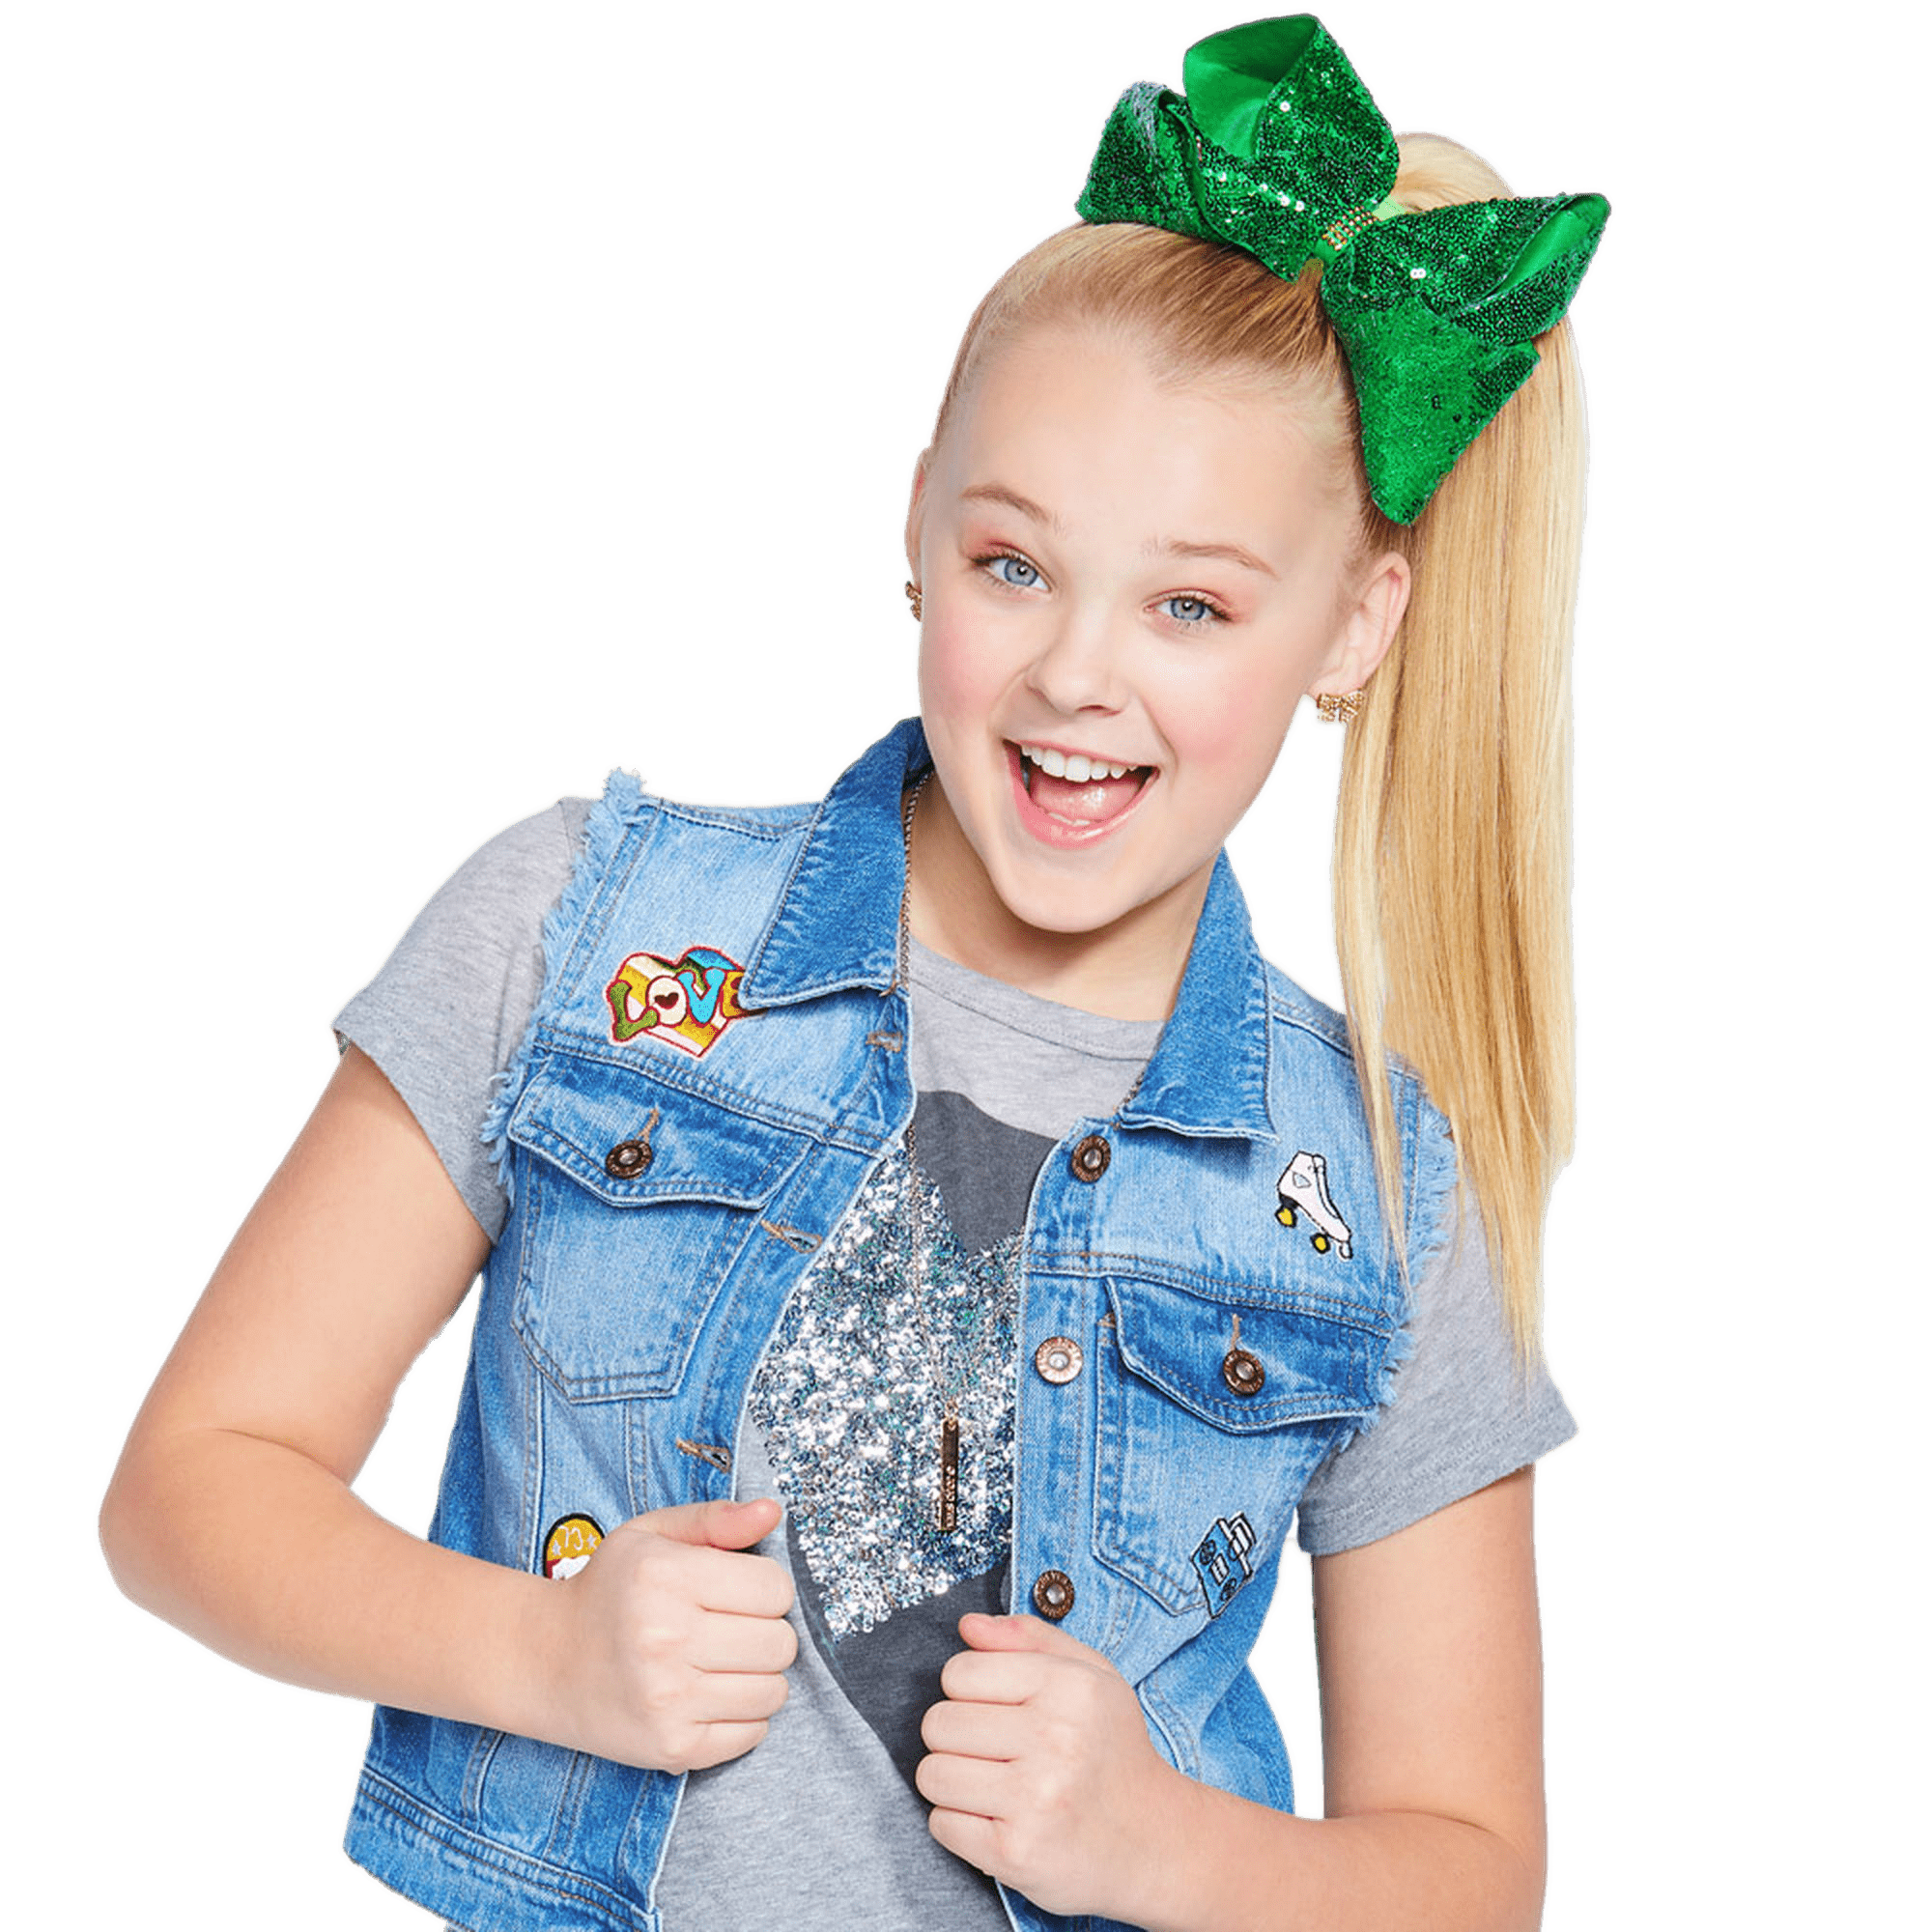 JoJo Siwa With Green Bow In Hair transparent PNG.